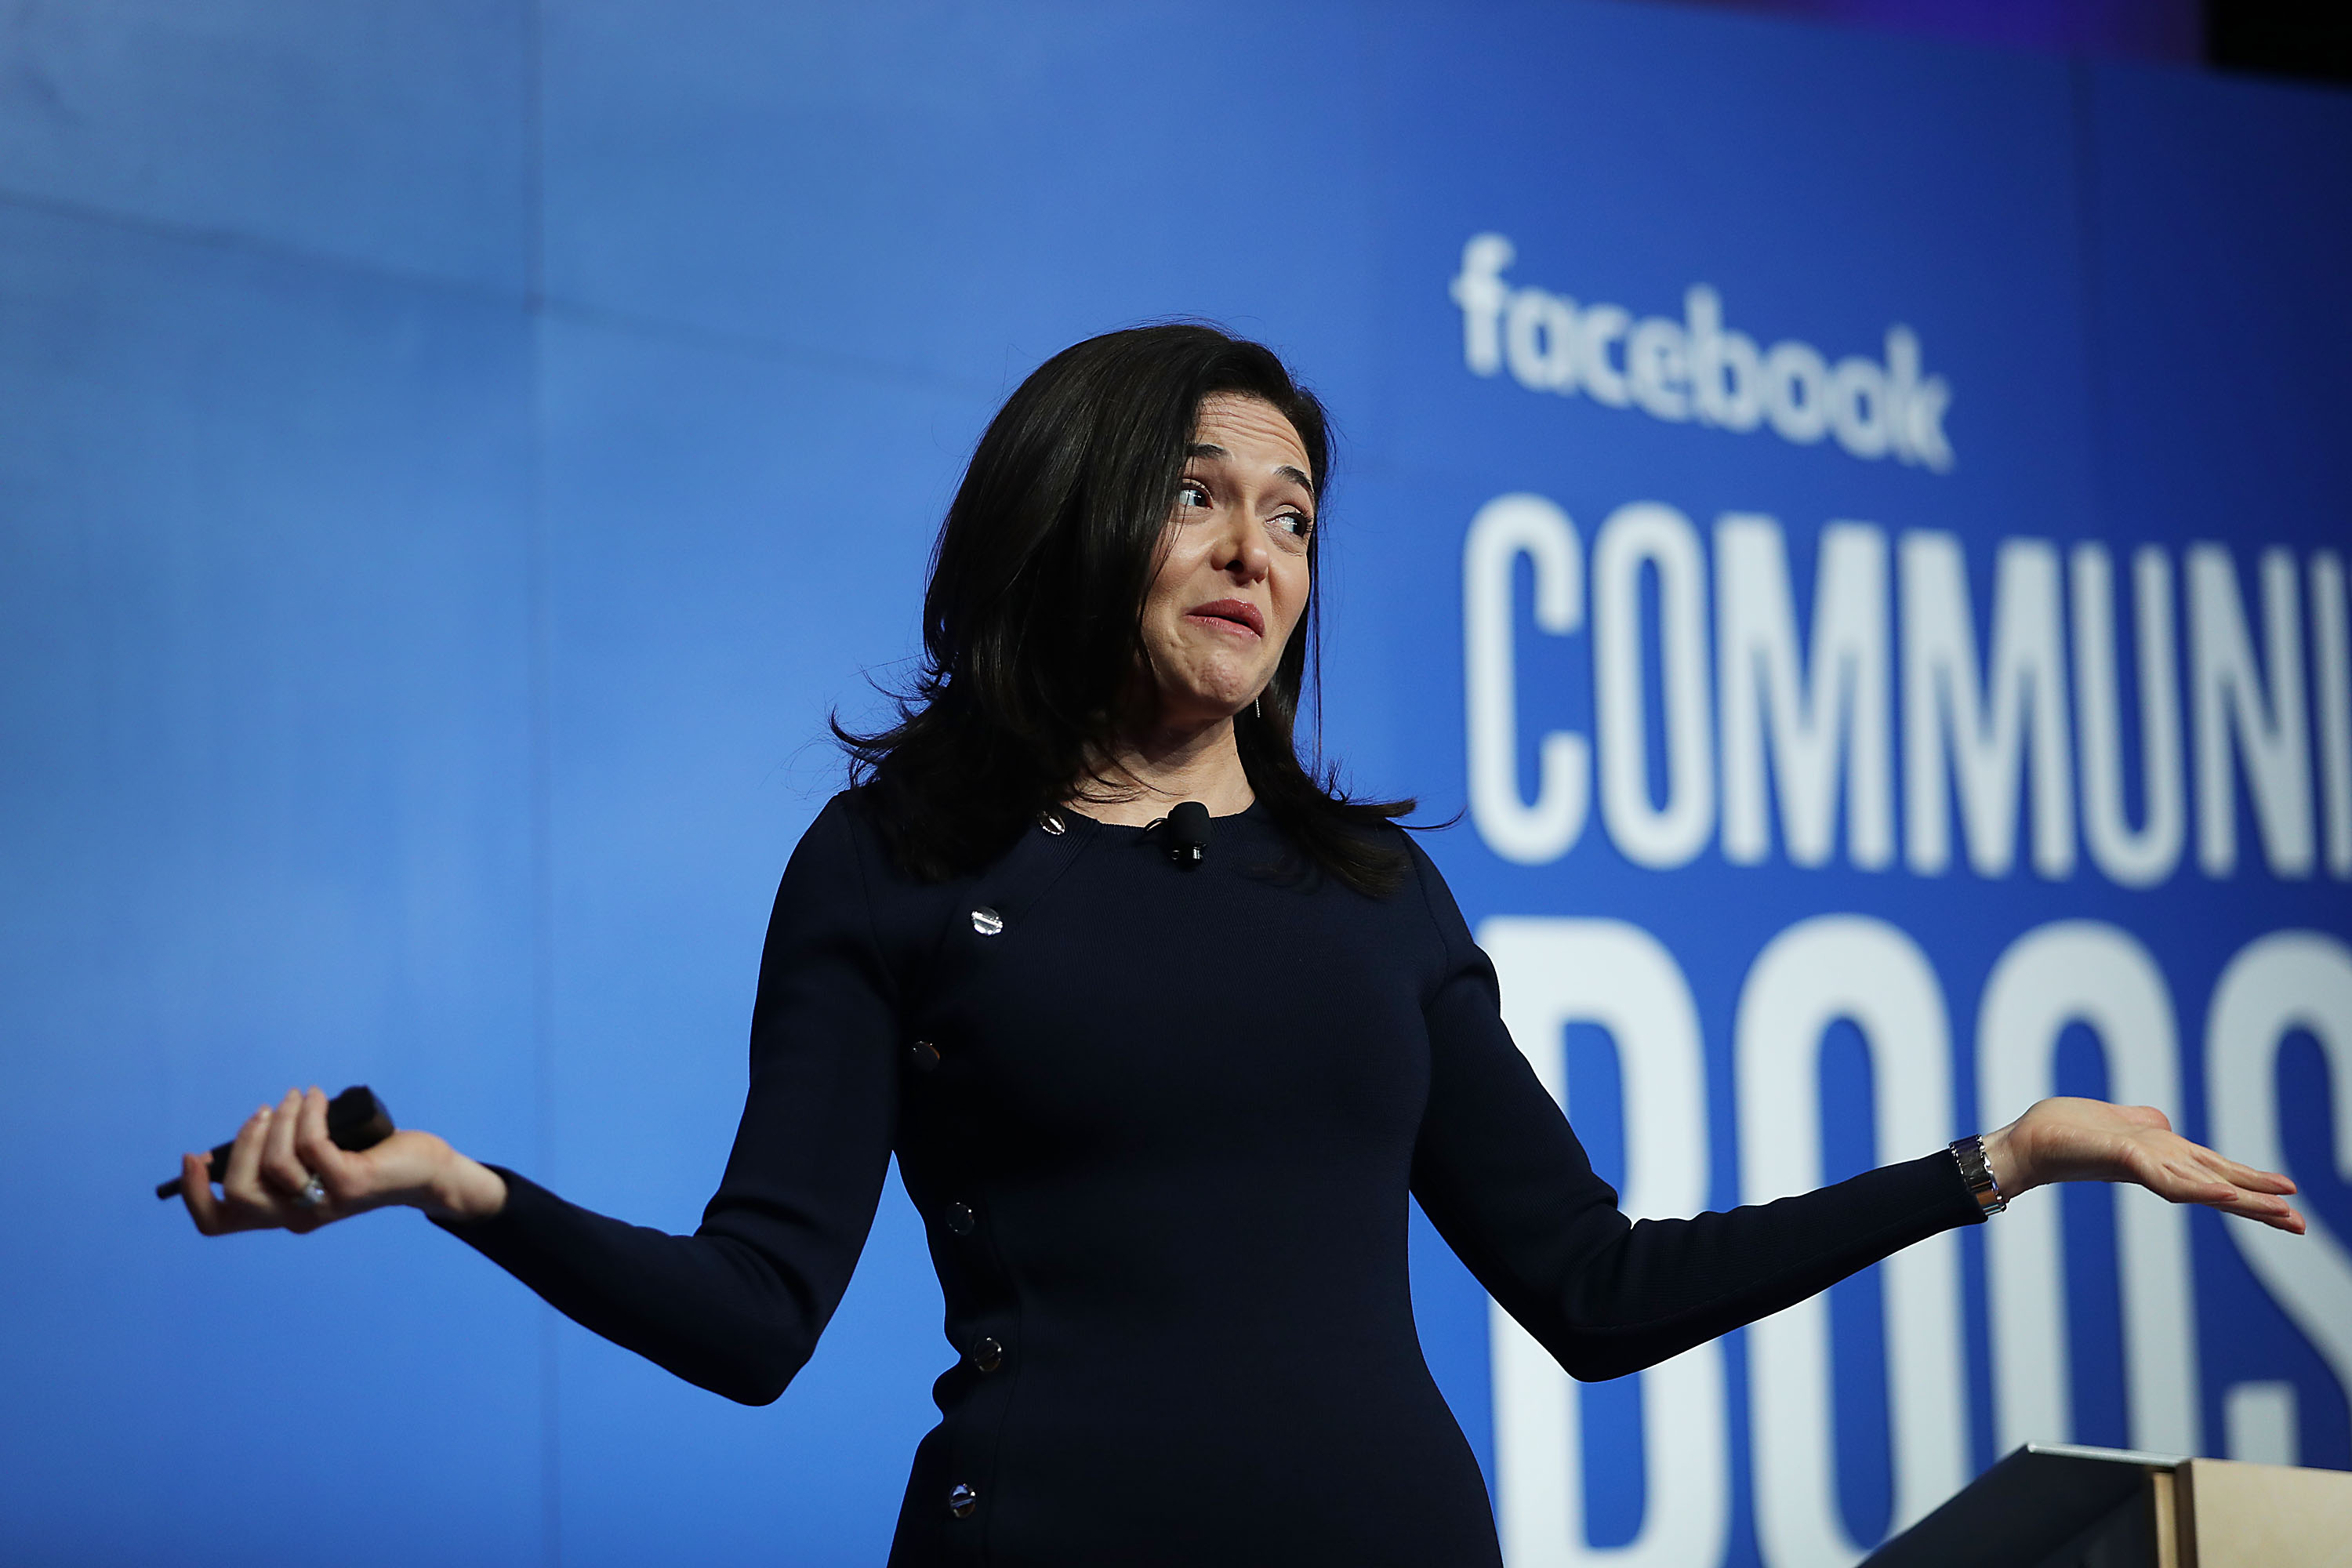 Facebook COO Sheryl Sandberg speaks during an event at the Knight Center on Dec. 18, 2018 in Miami.